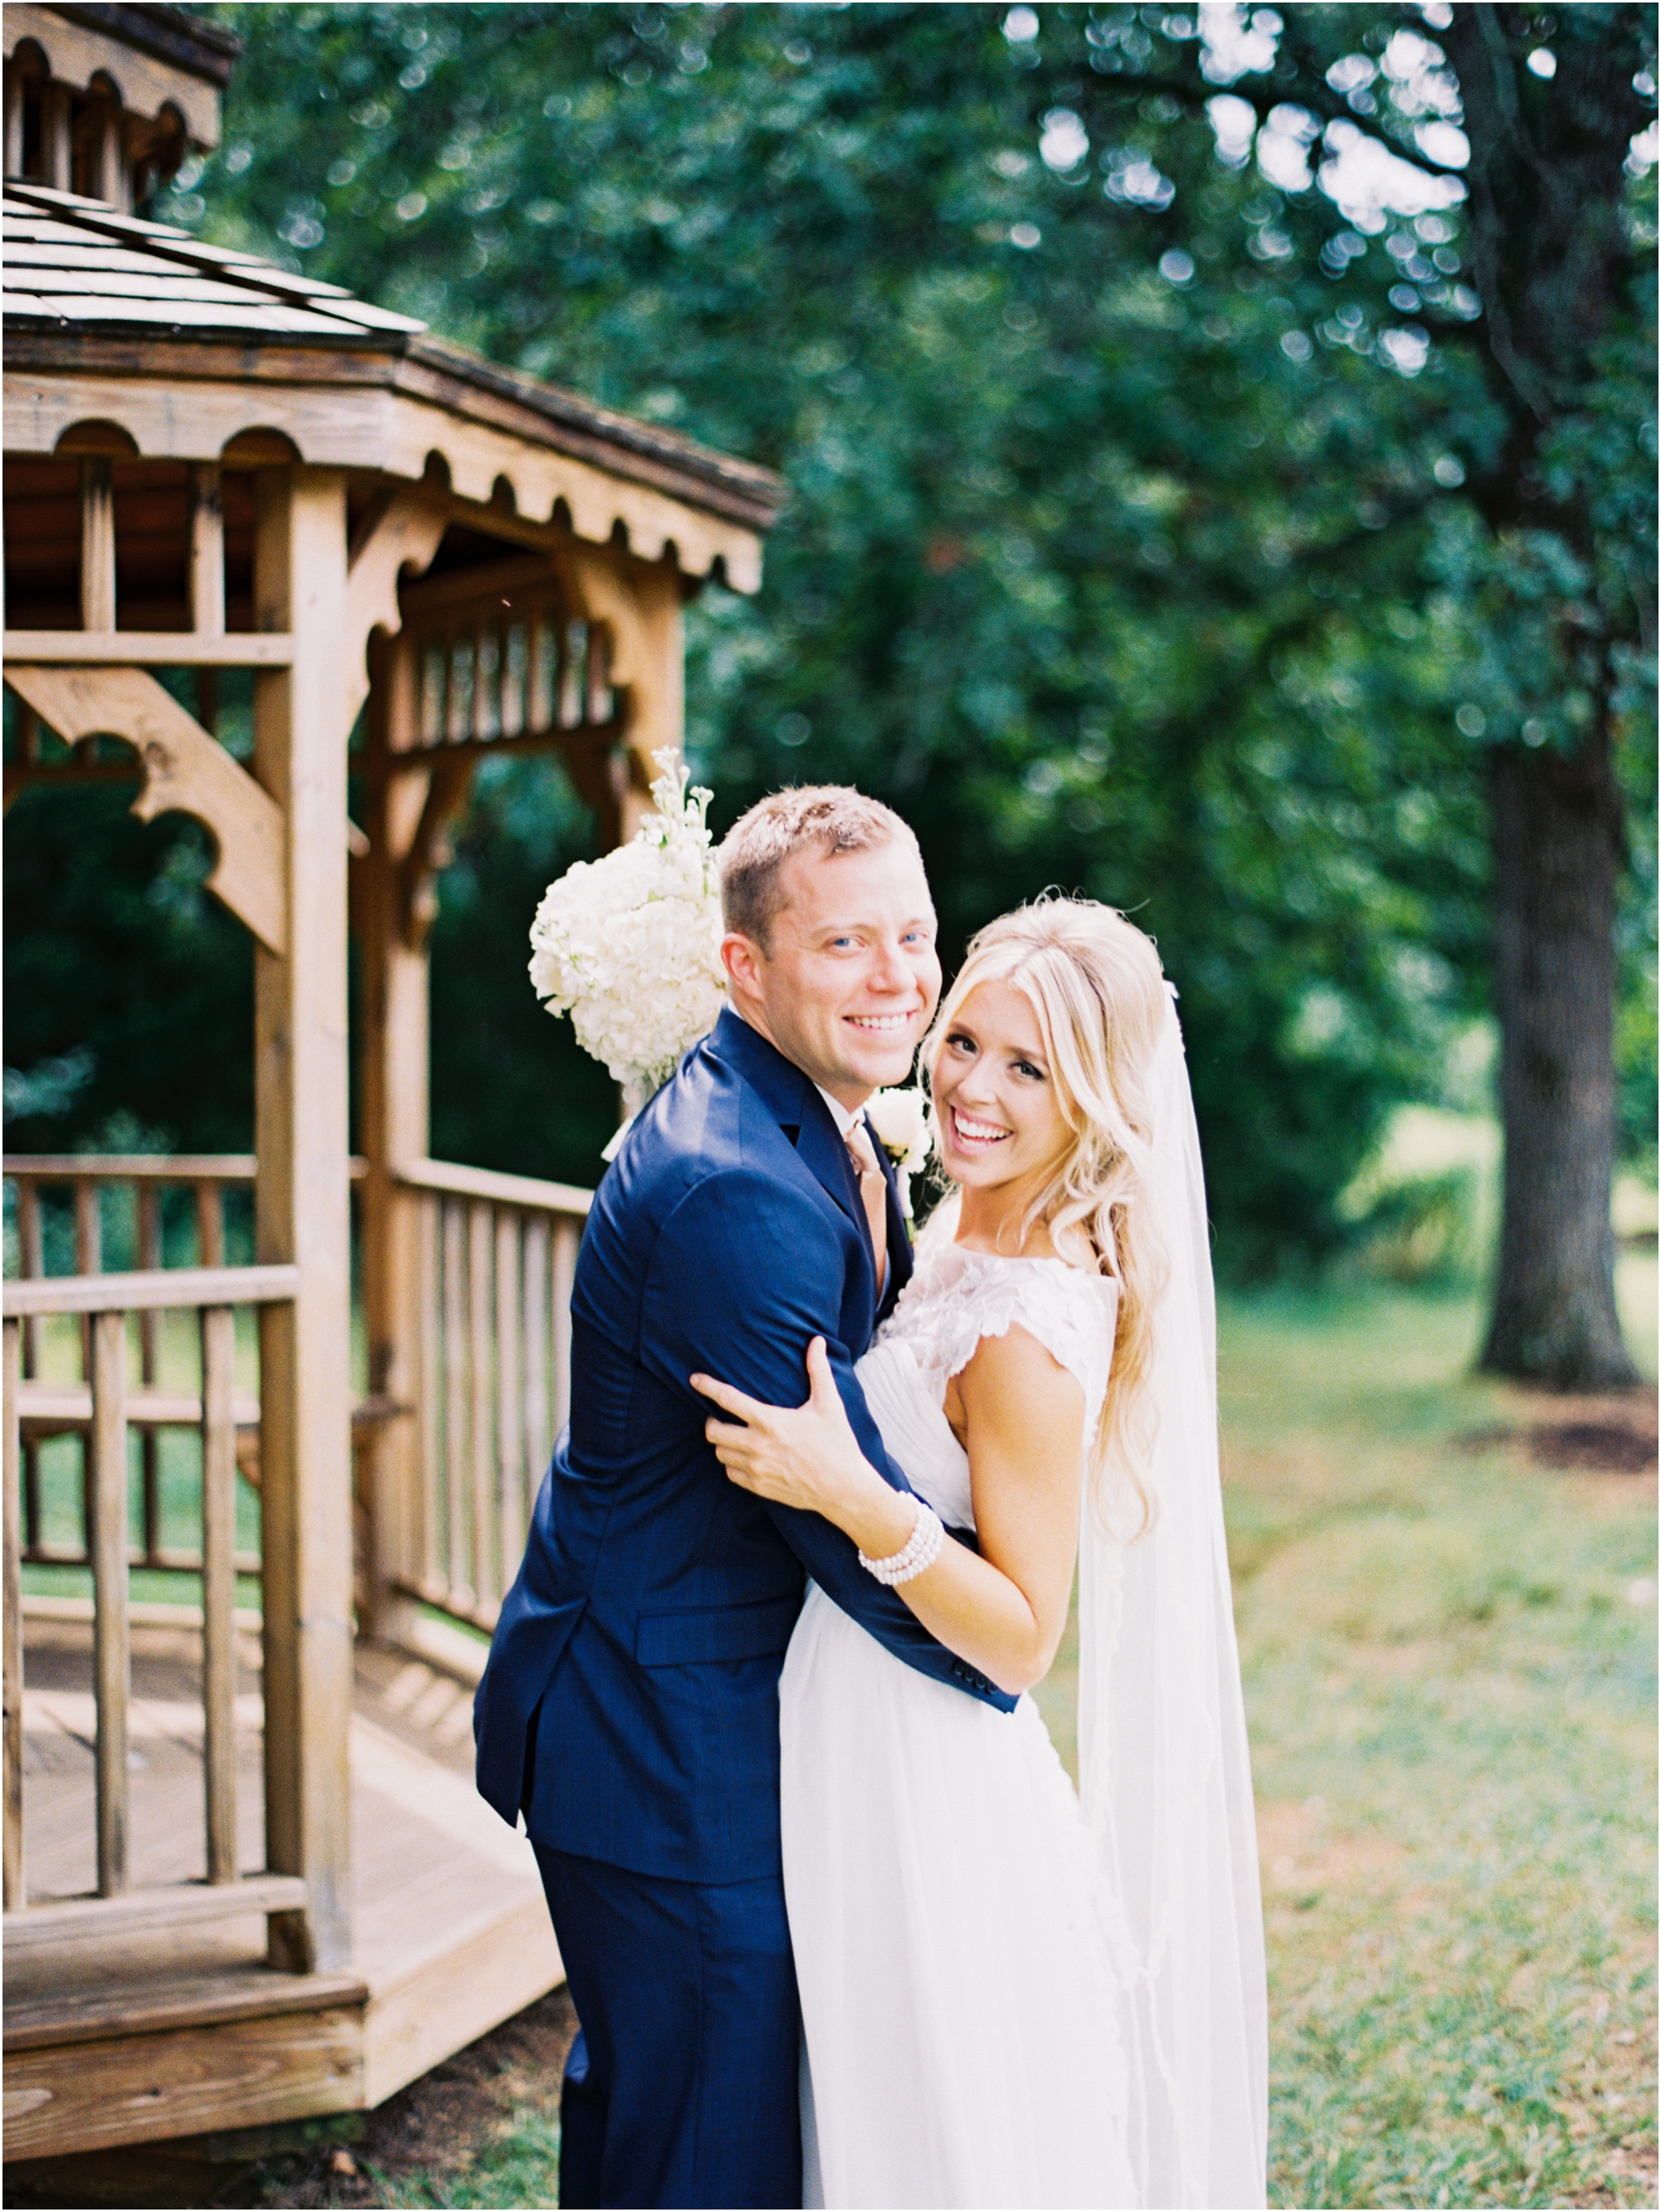 Buffalo MO Wedding at Timberline Barn by Jordan Brittley Photography (www.jordanbrittley.com)